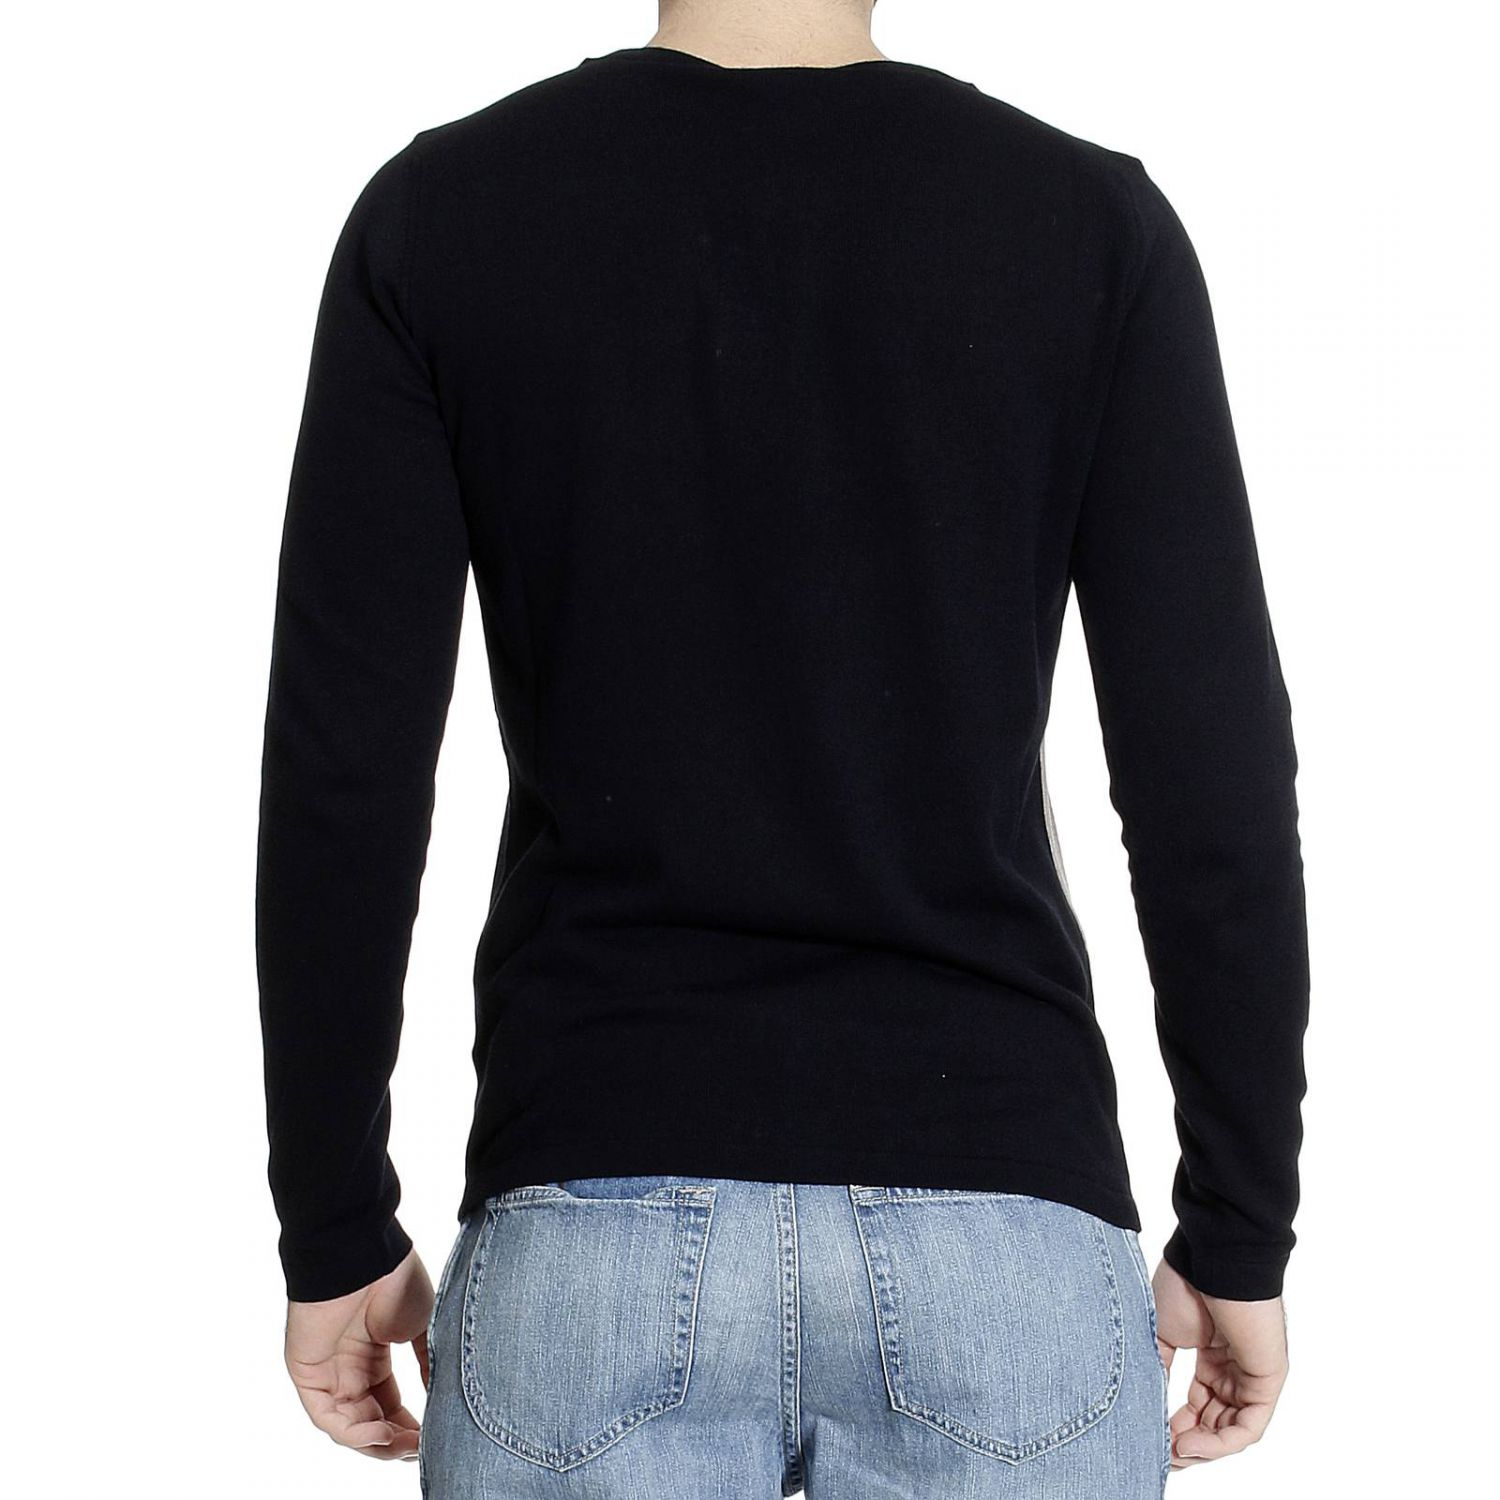 emporio armani sweater long sleeve roundneck punzonato. Black Bedroom Furniture Sets. Home Design Ideas